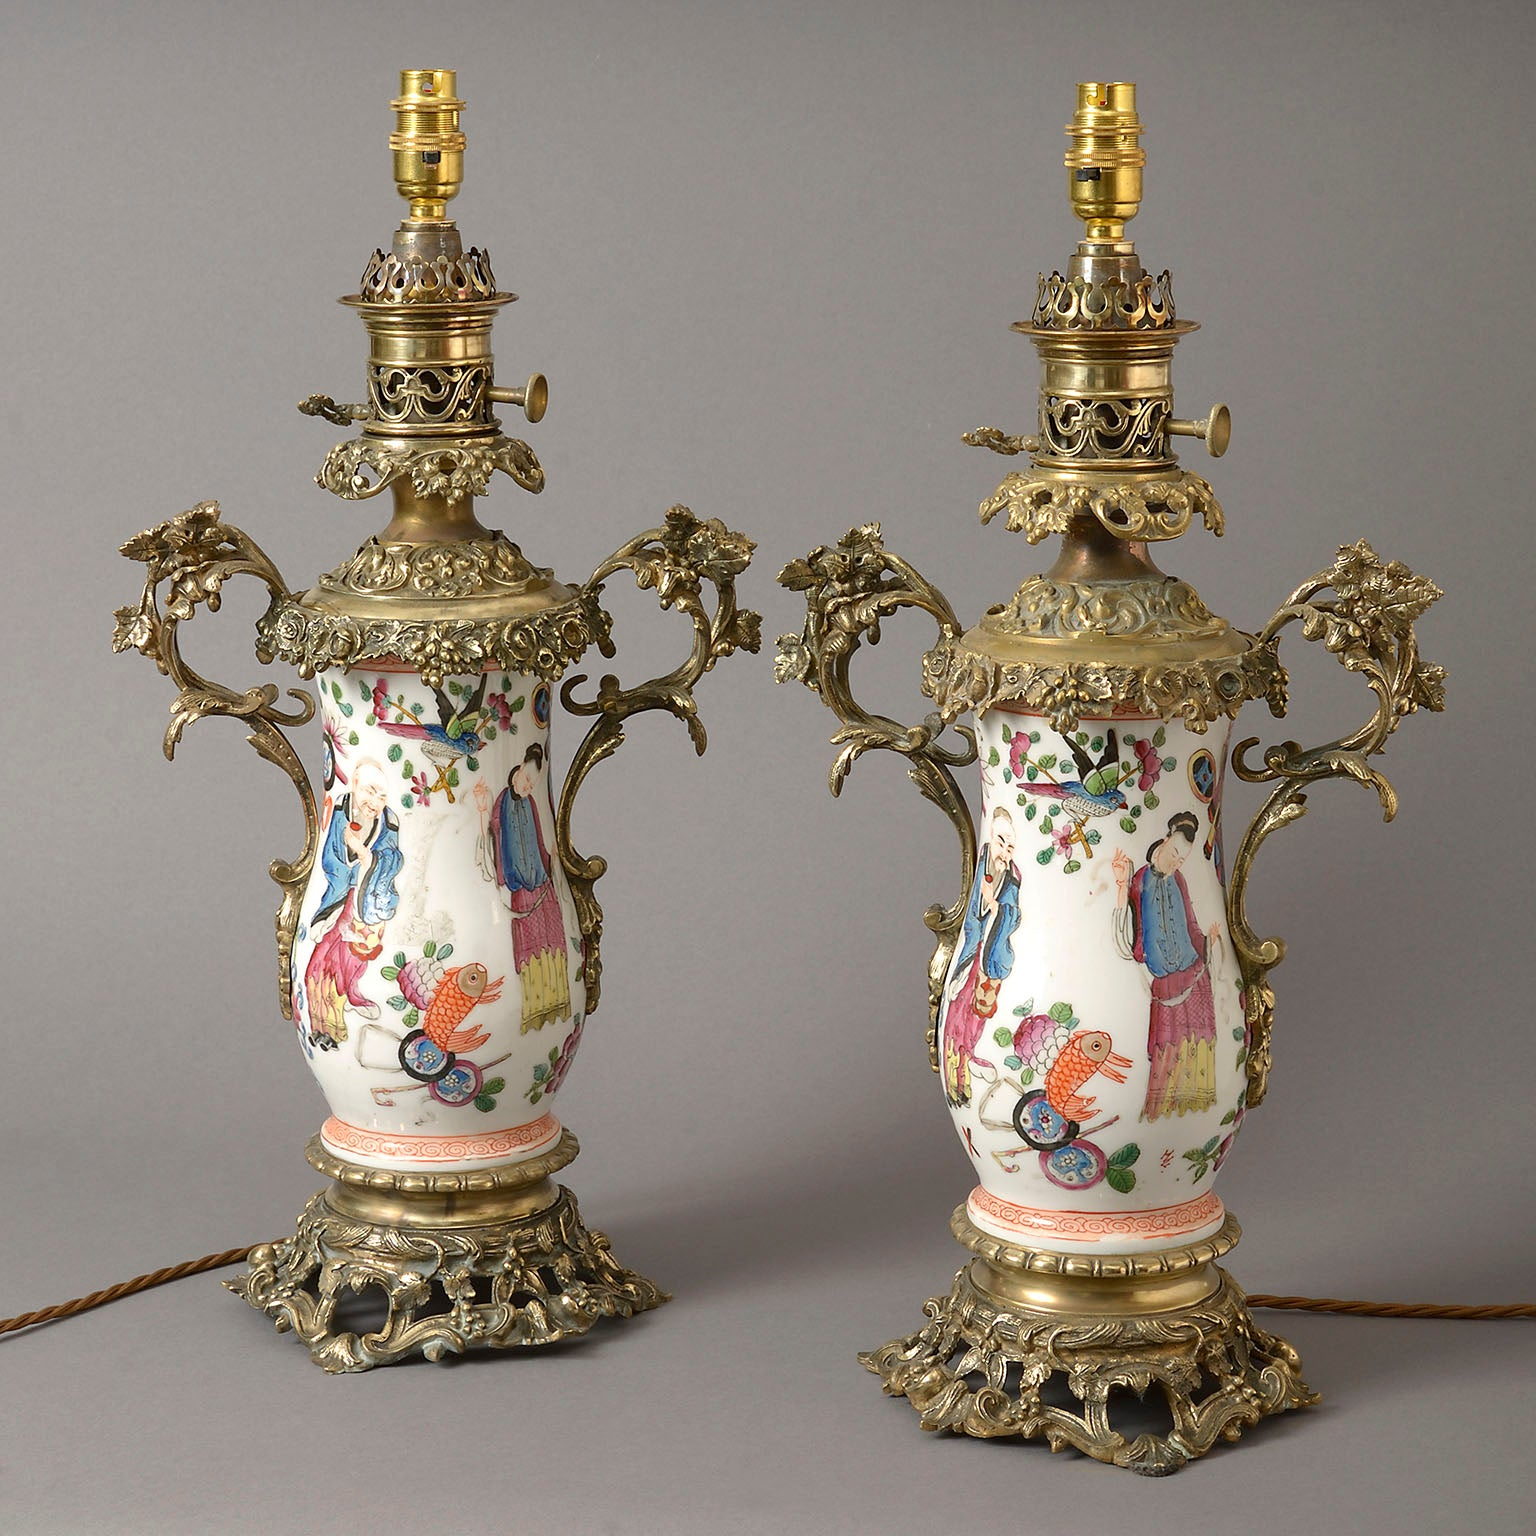 Pair of Late 19th Century French Lamps